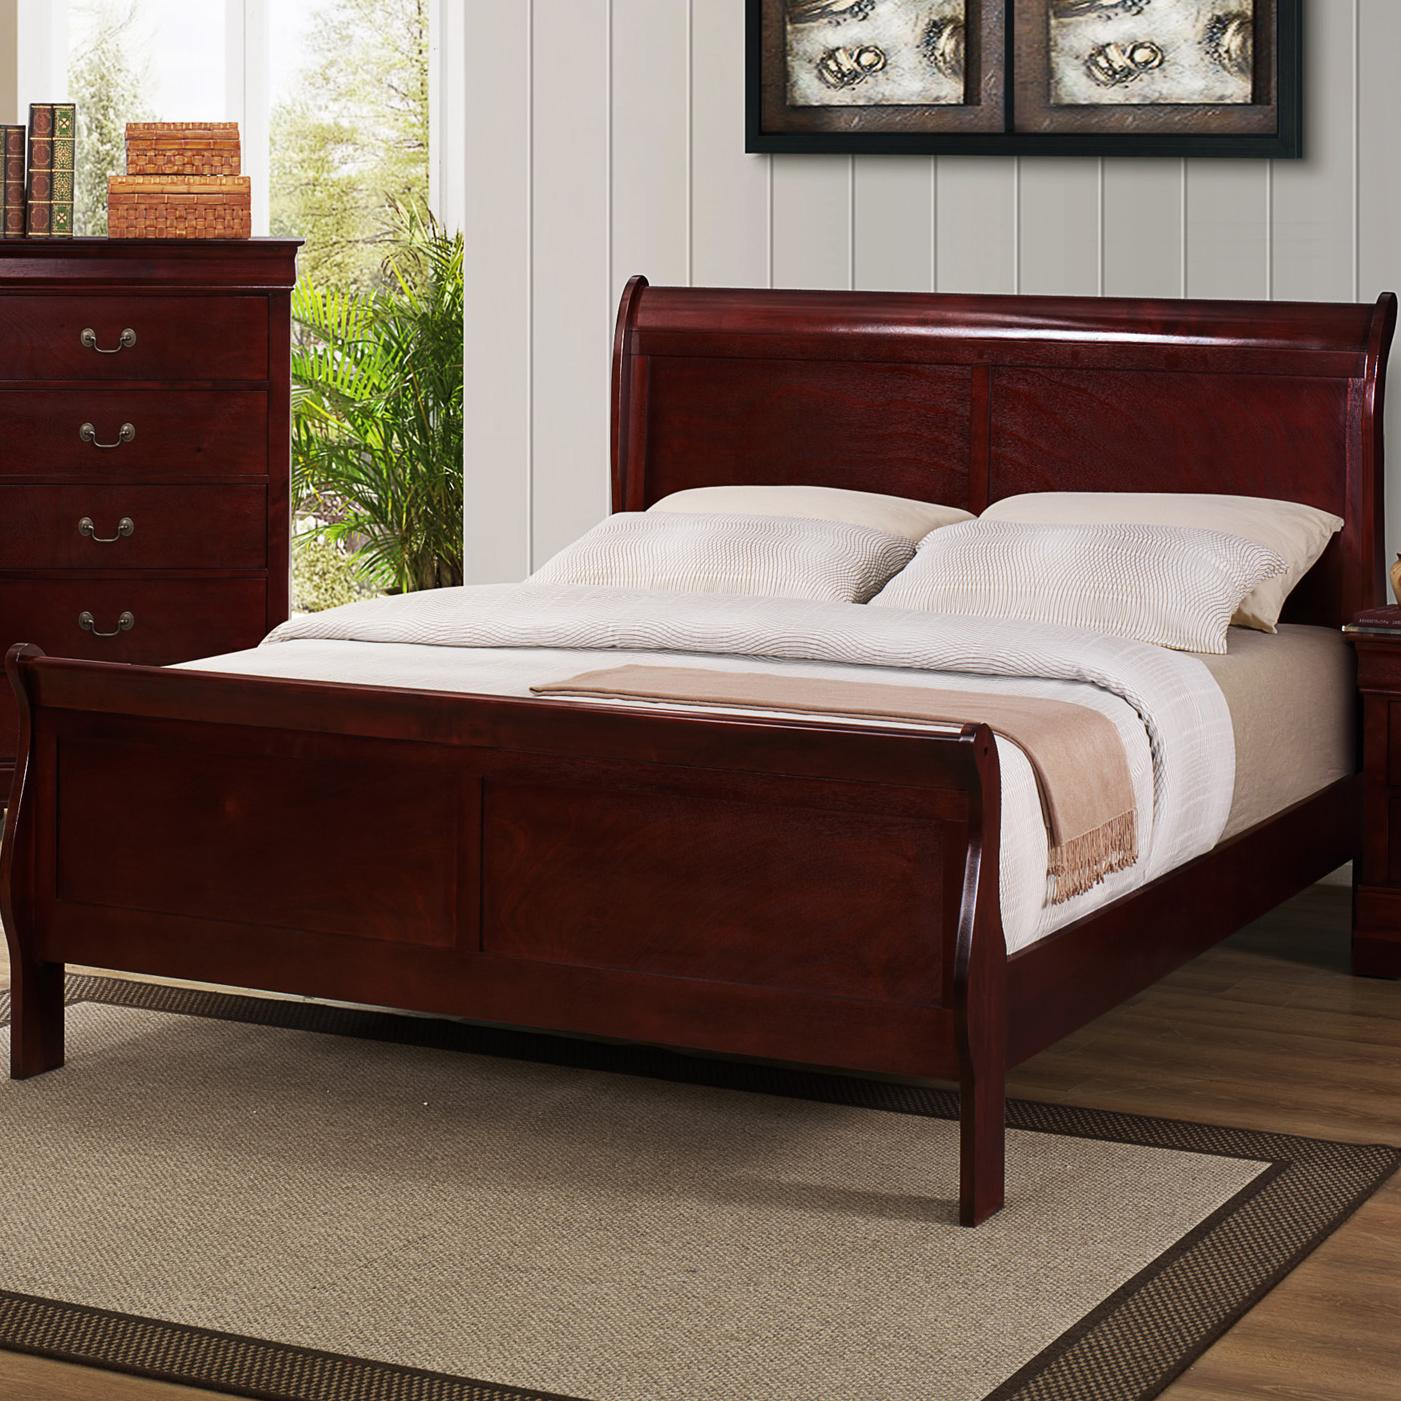 B3800 Louis Phillipe Full Sleigh Bed by Crown Mark at Northeast Factory Direct